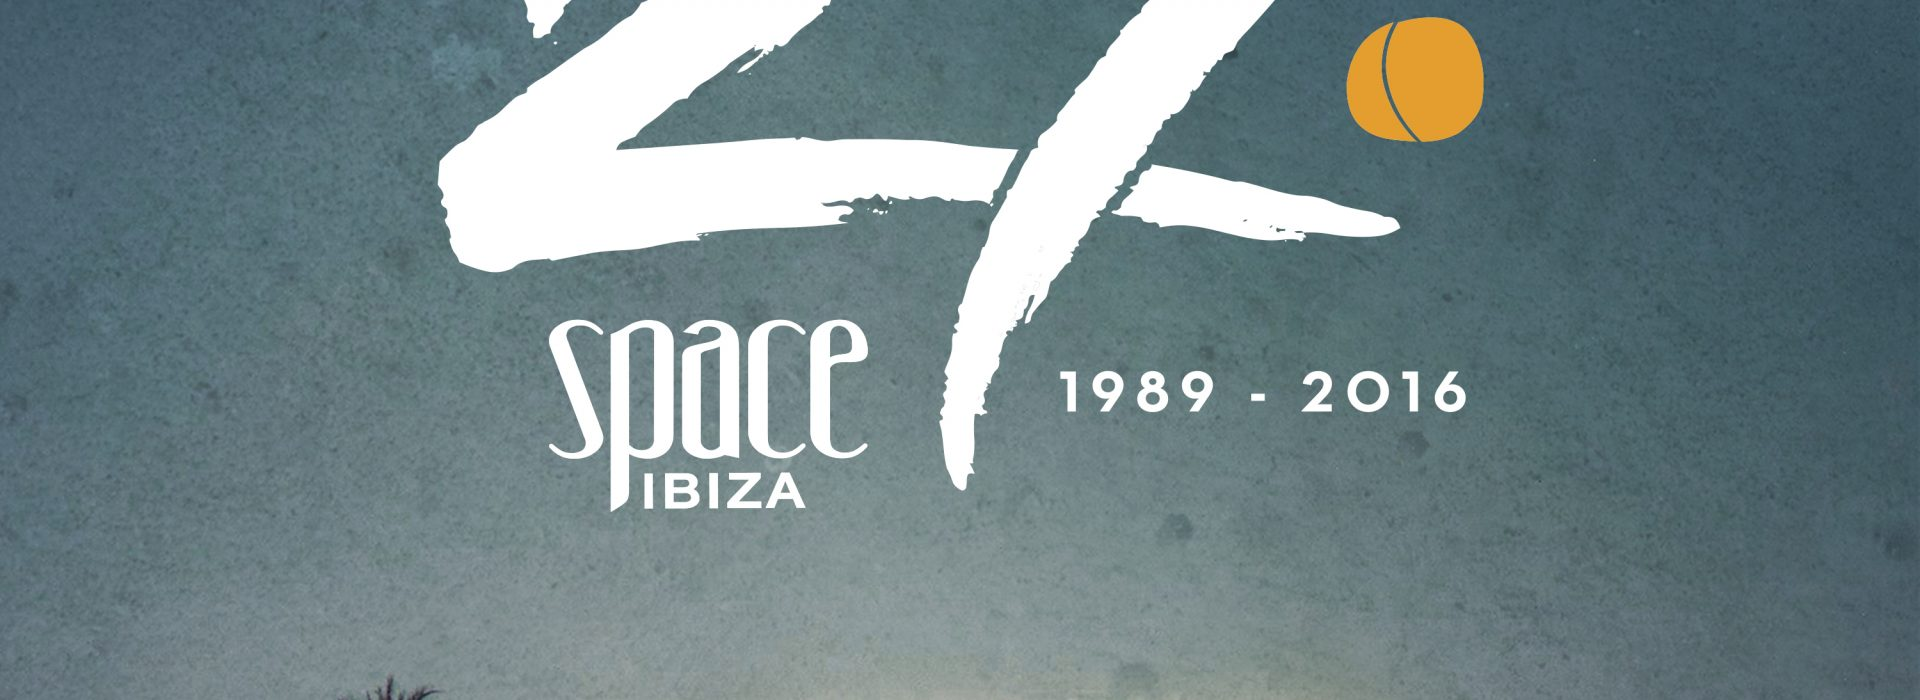 SPACE IBIZA 2016 MIXED BY CARL COX, PIG&DAN AND MARK BROWN